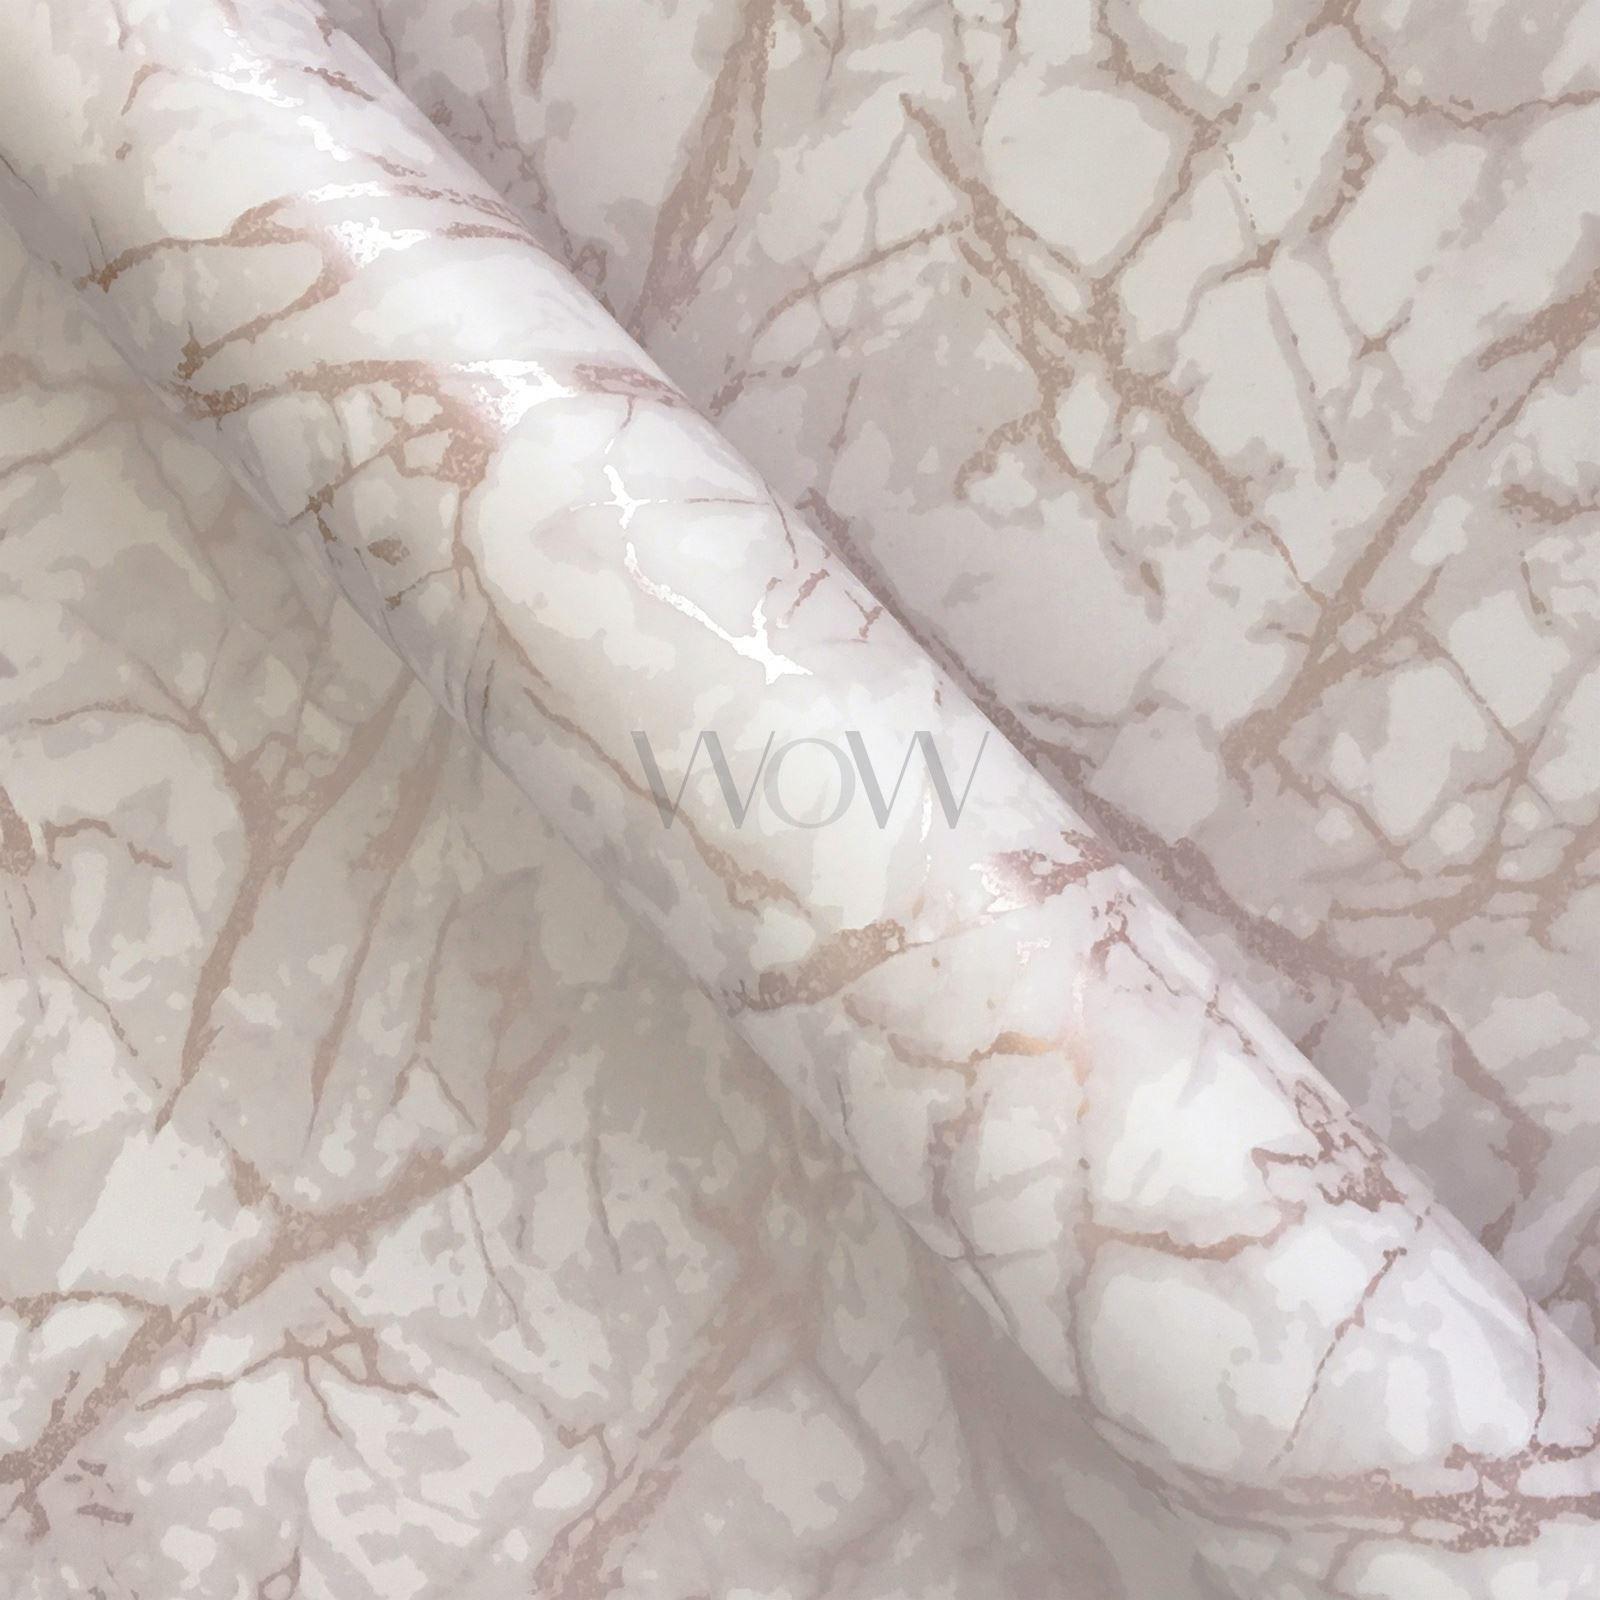 FINE-DECOR-METALLIC-GEOMETRIC-PLAIN-MARBLE-WALLPAPER-ROSE-GOLD-COPPER-SILVER thumbnail 19